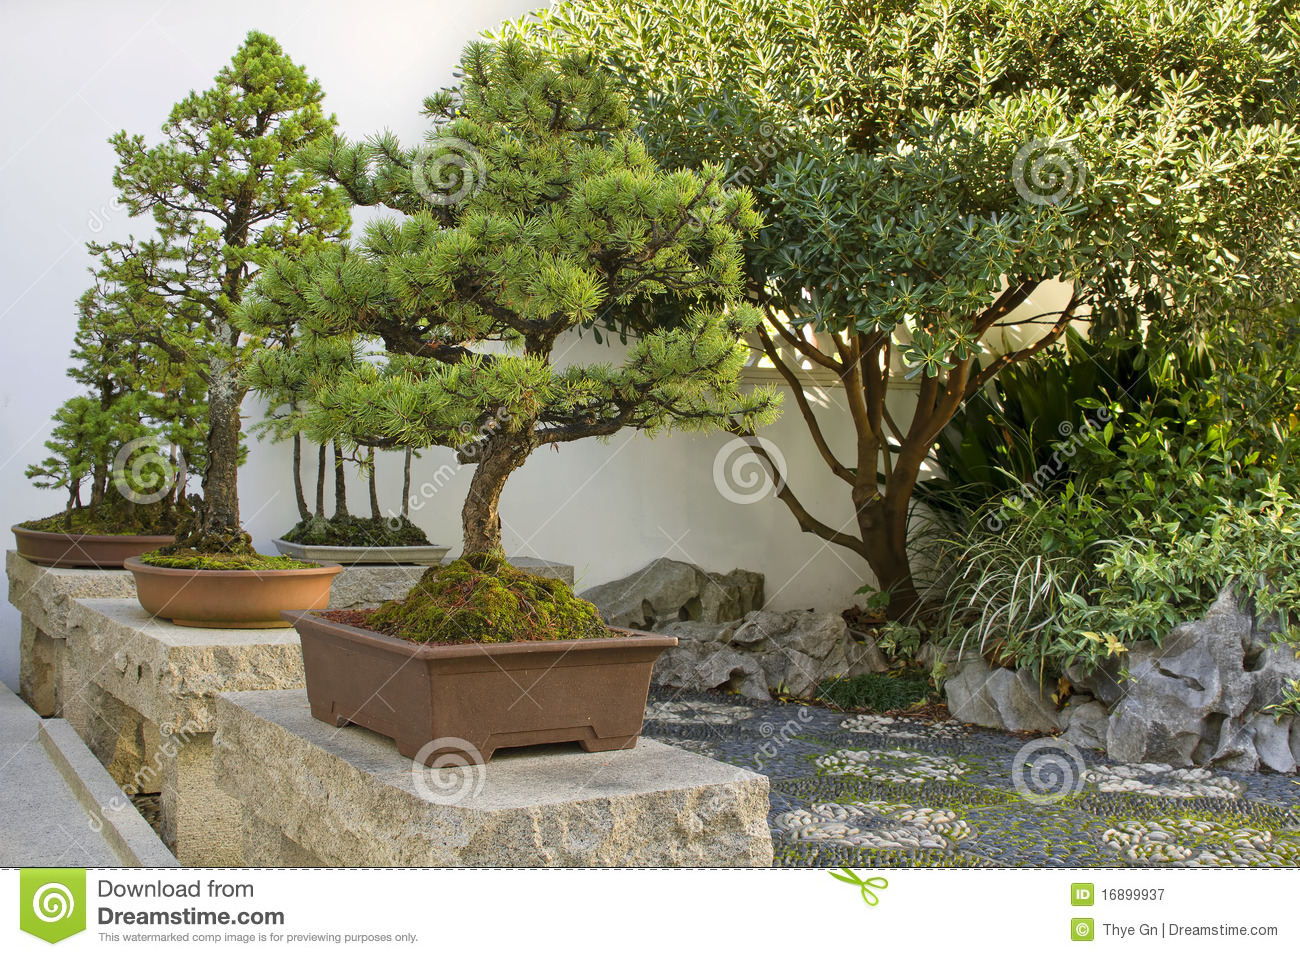 Bonsai trees in chinese garden stock image image 16899937 for Jardin chinois miniature